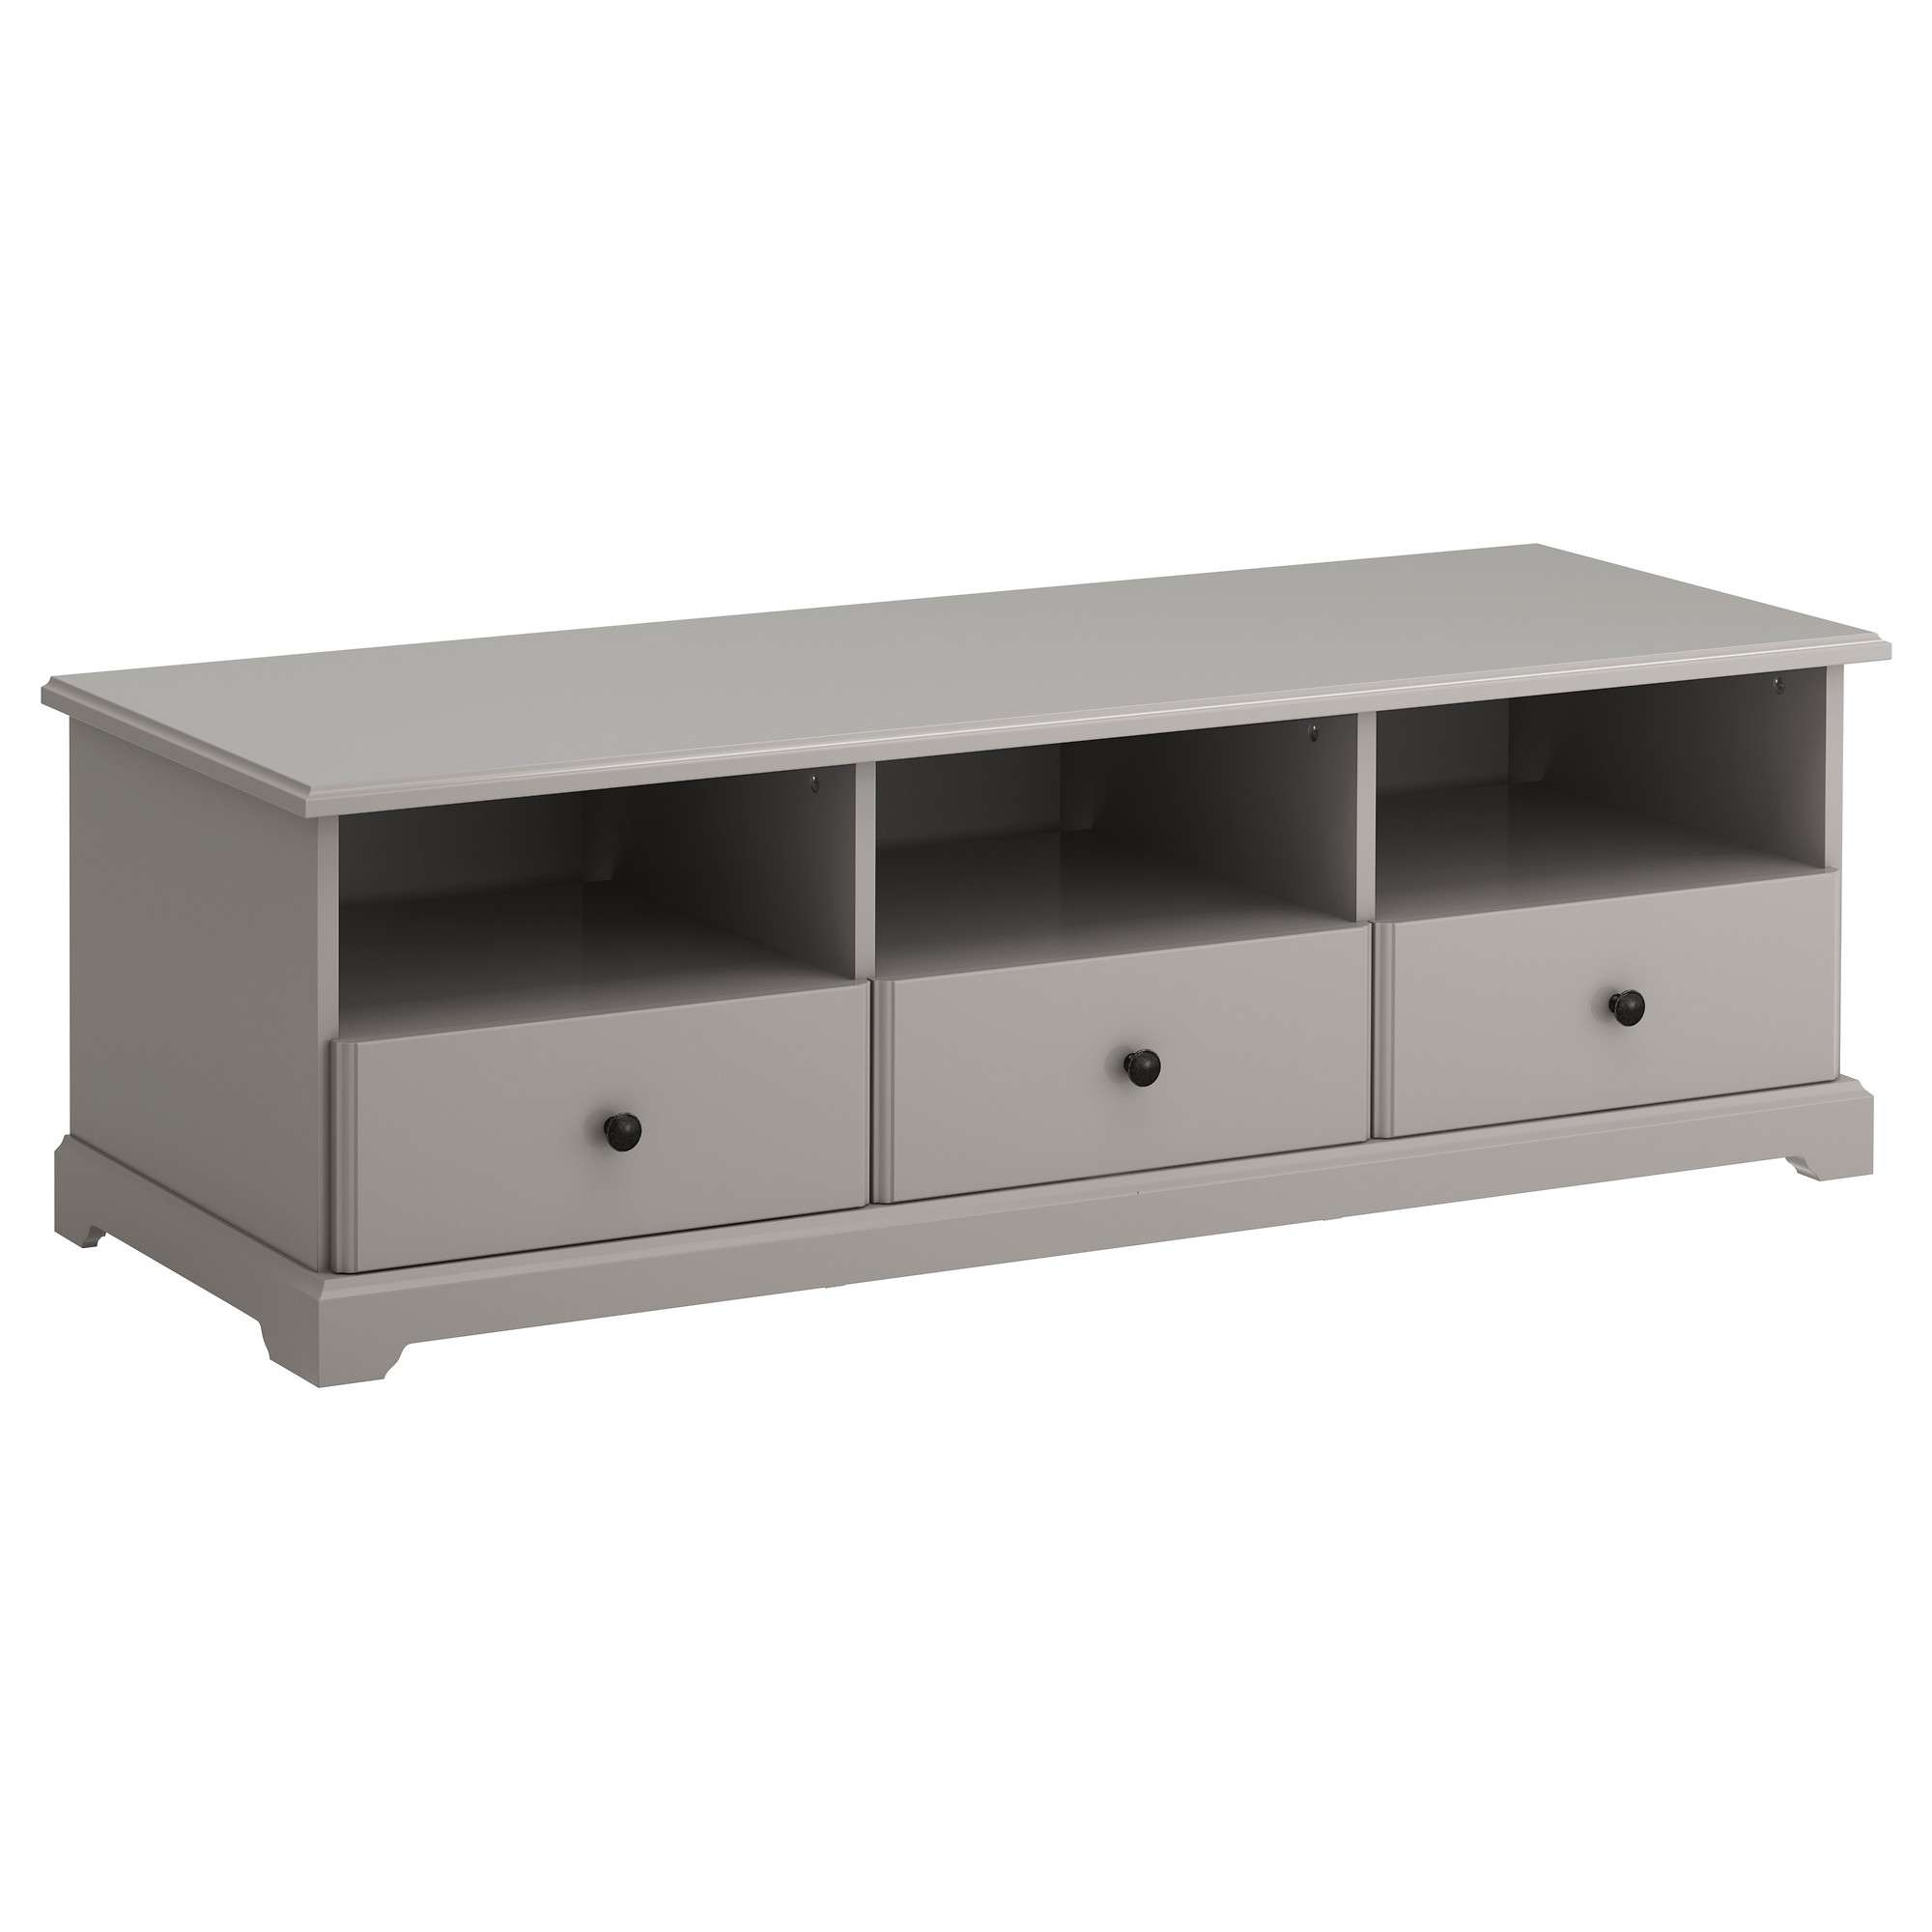 Tv Stands & Entertainment Centers – Ikea With Regard To Low Long Tv Stands (View 12 of 15)